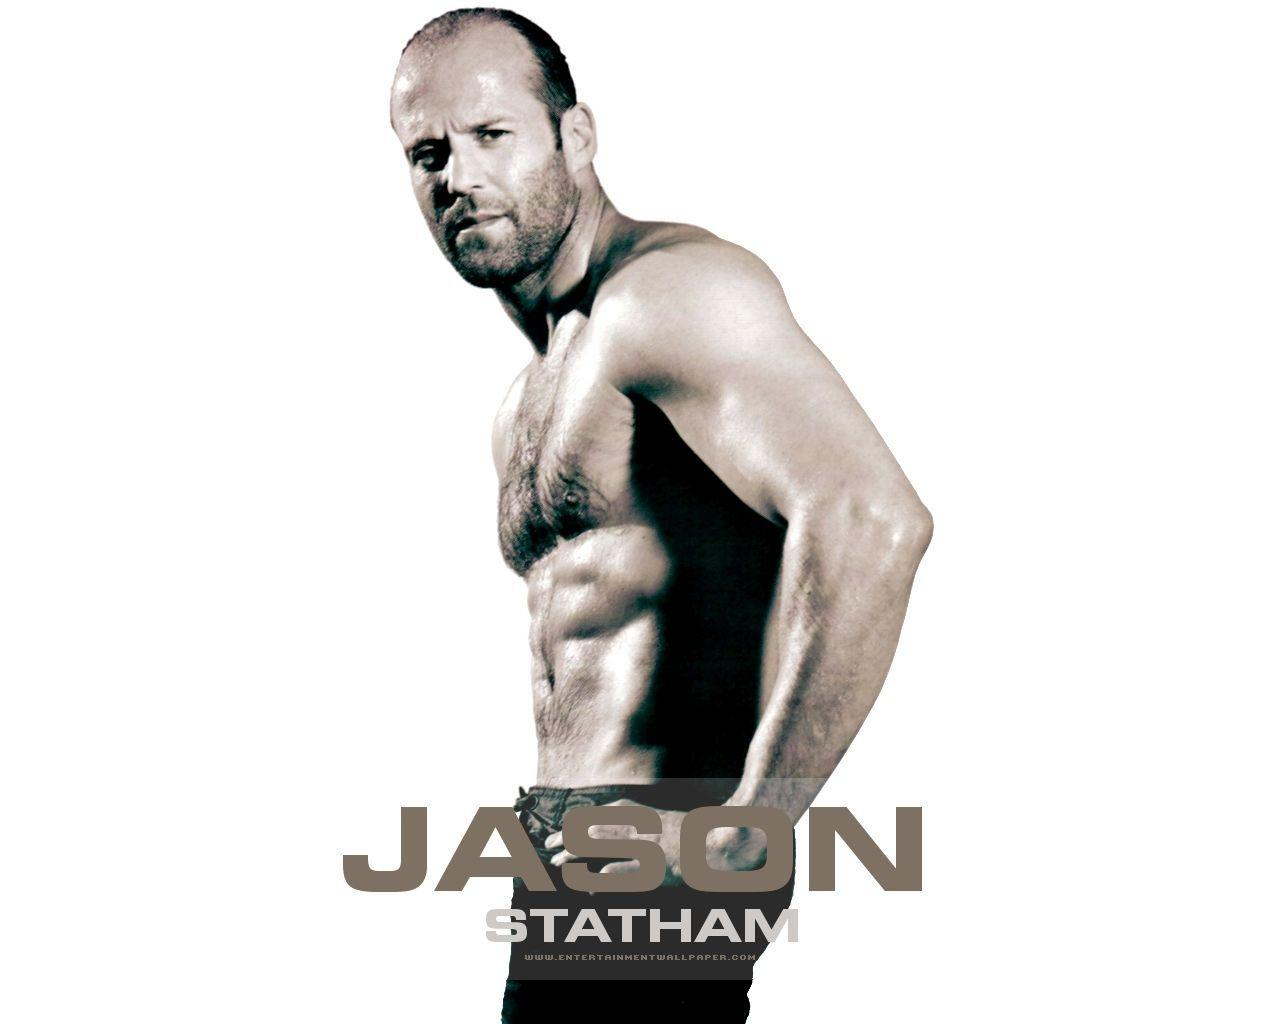 Jason Statham - Jason Statham Wallpaper (645152) - Fanpop